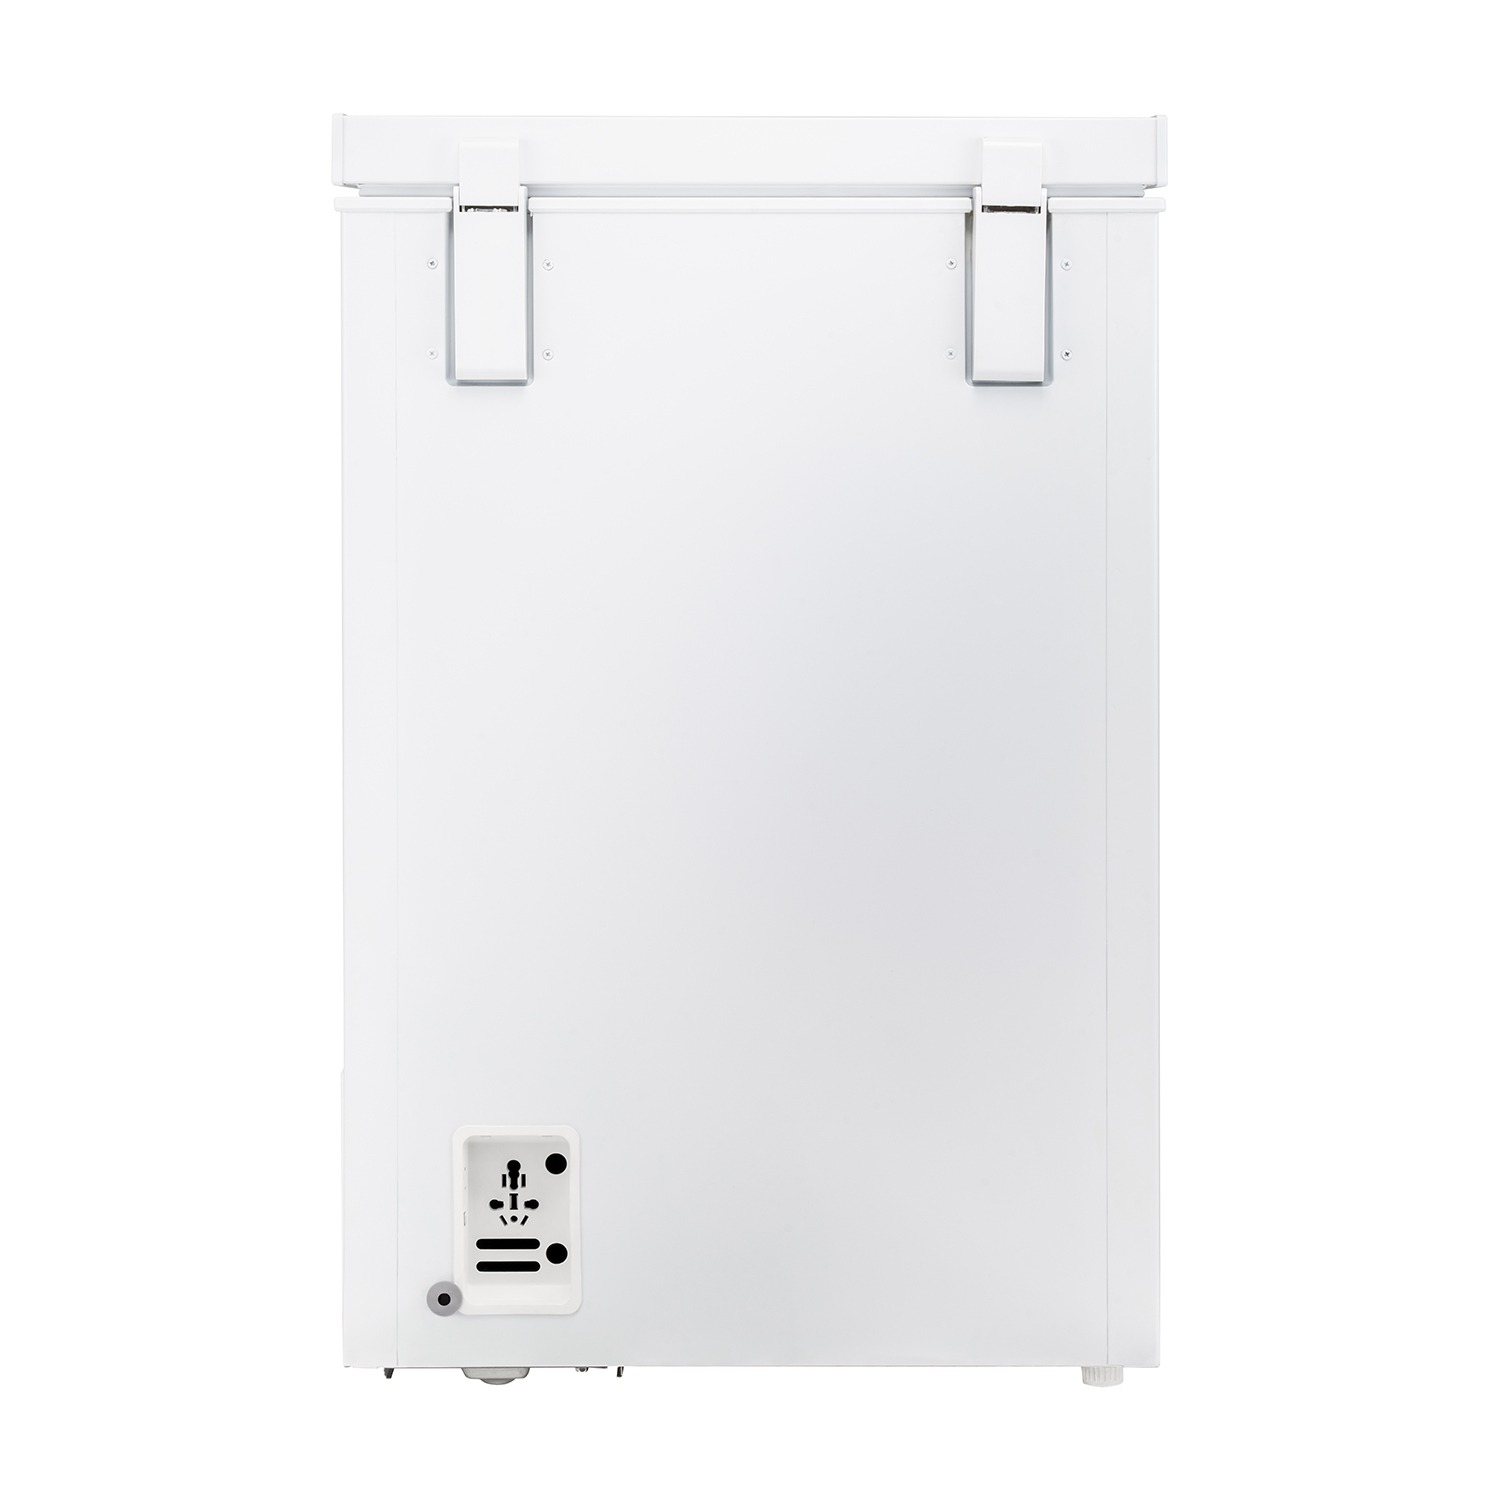 Fridgemaster 55cm Static Chest Freezer - White - A+ Energy Rated - 1